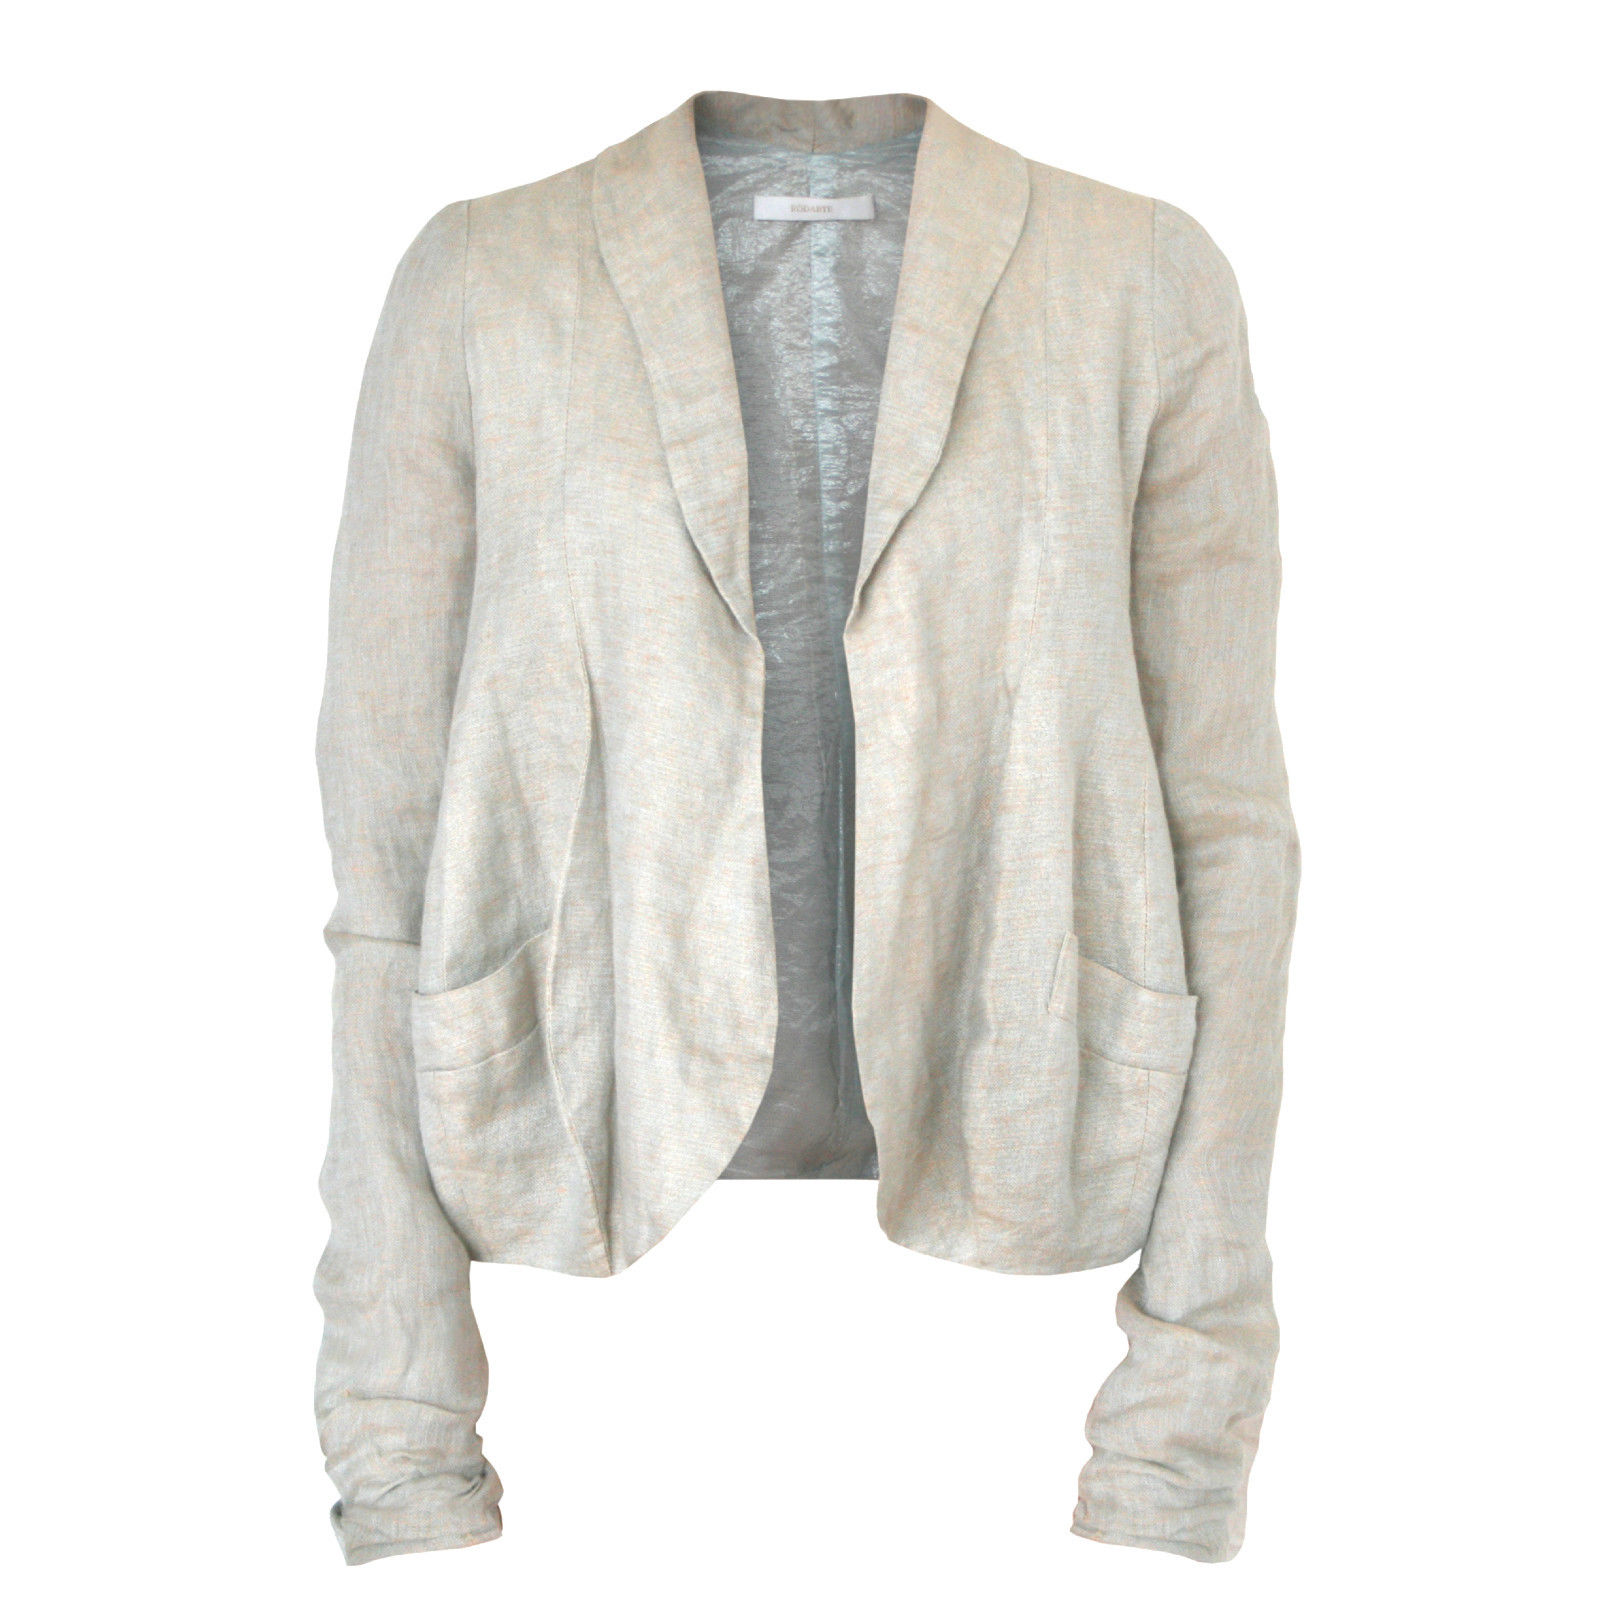 http://stores.ebay.com/The-Couture-Auction-Co?_rdc=1